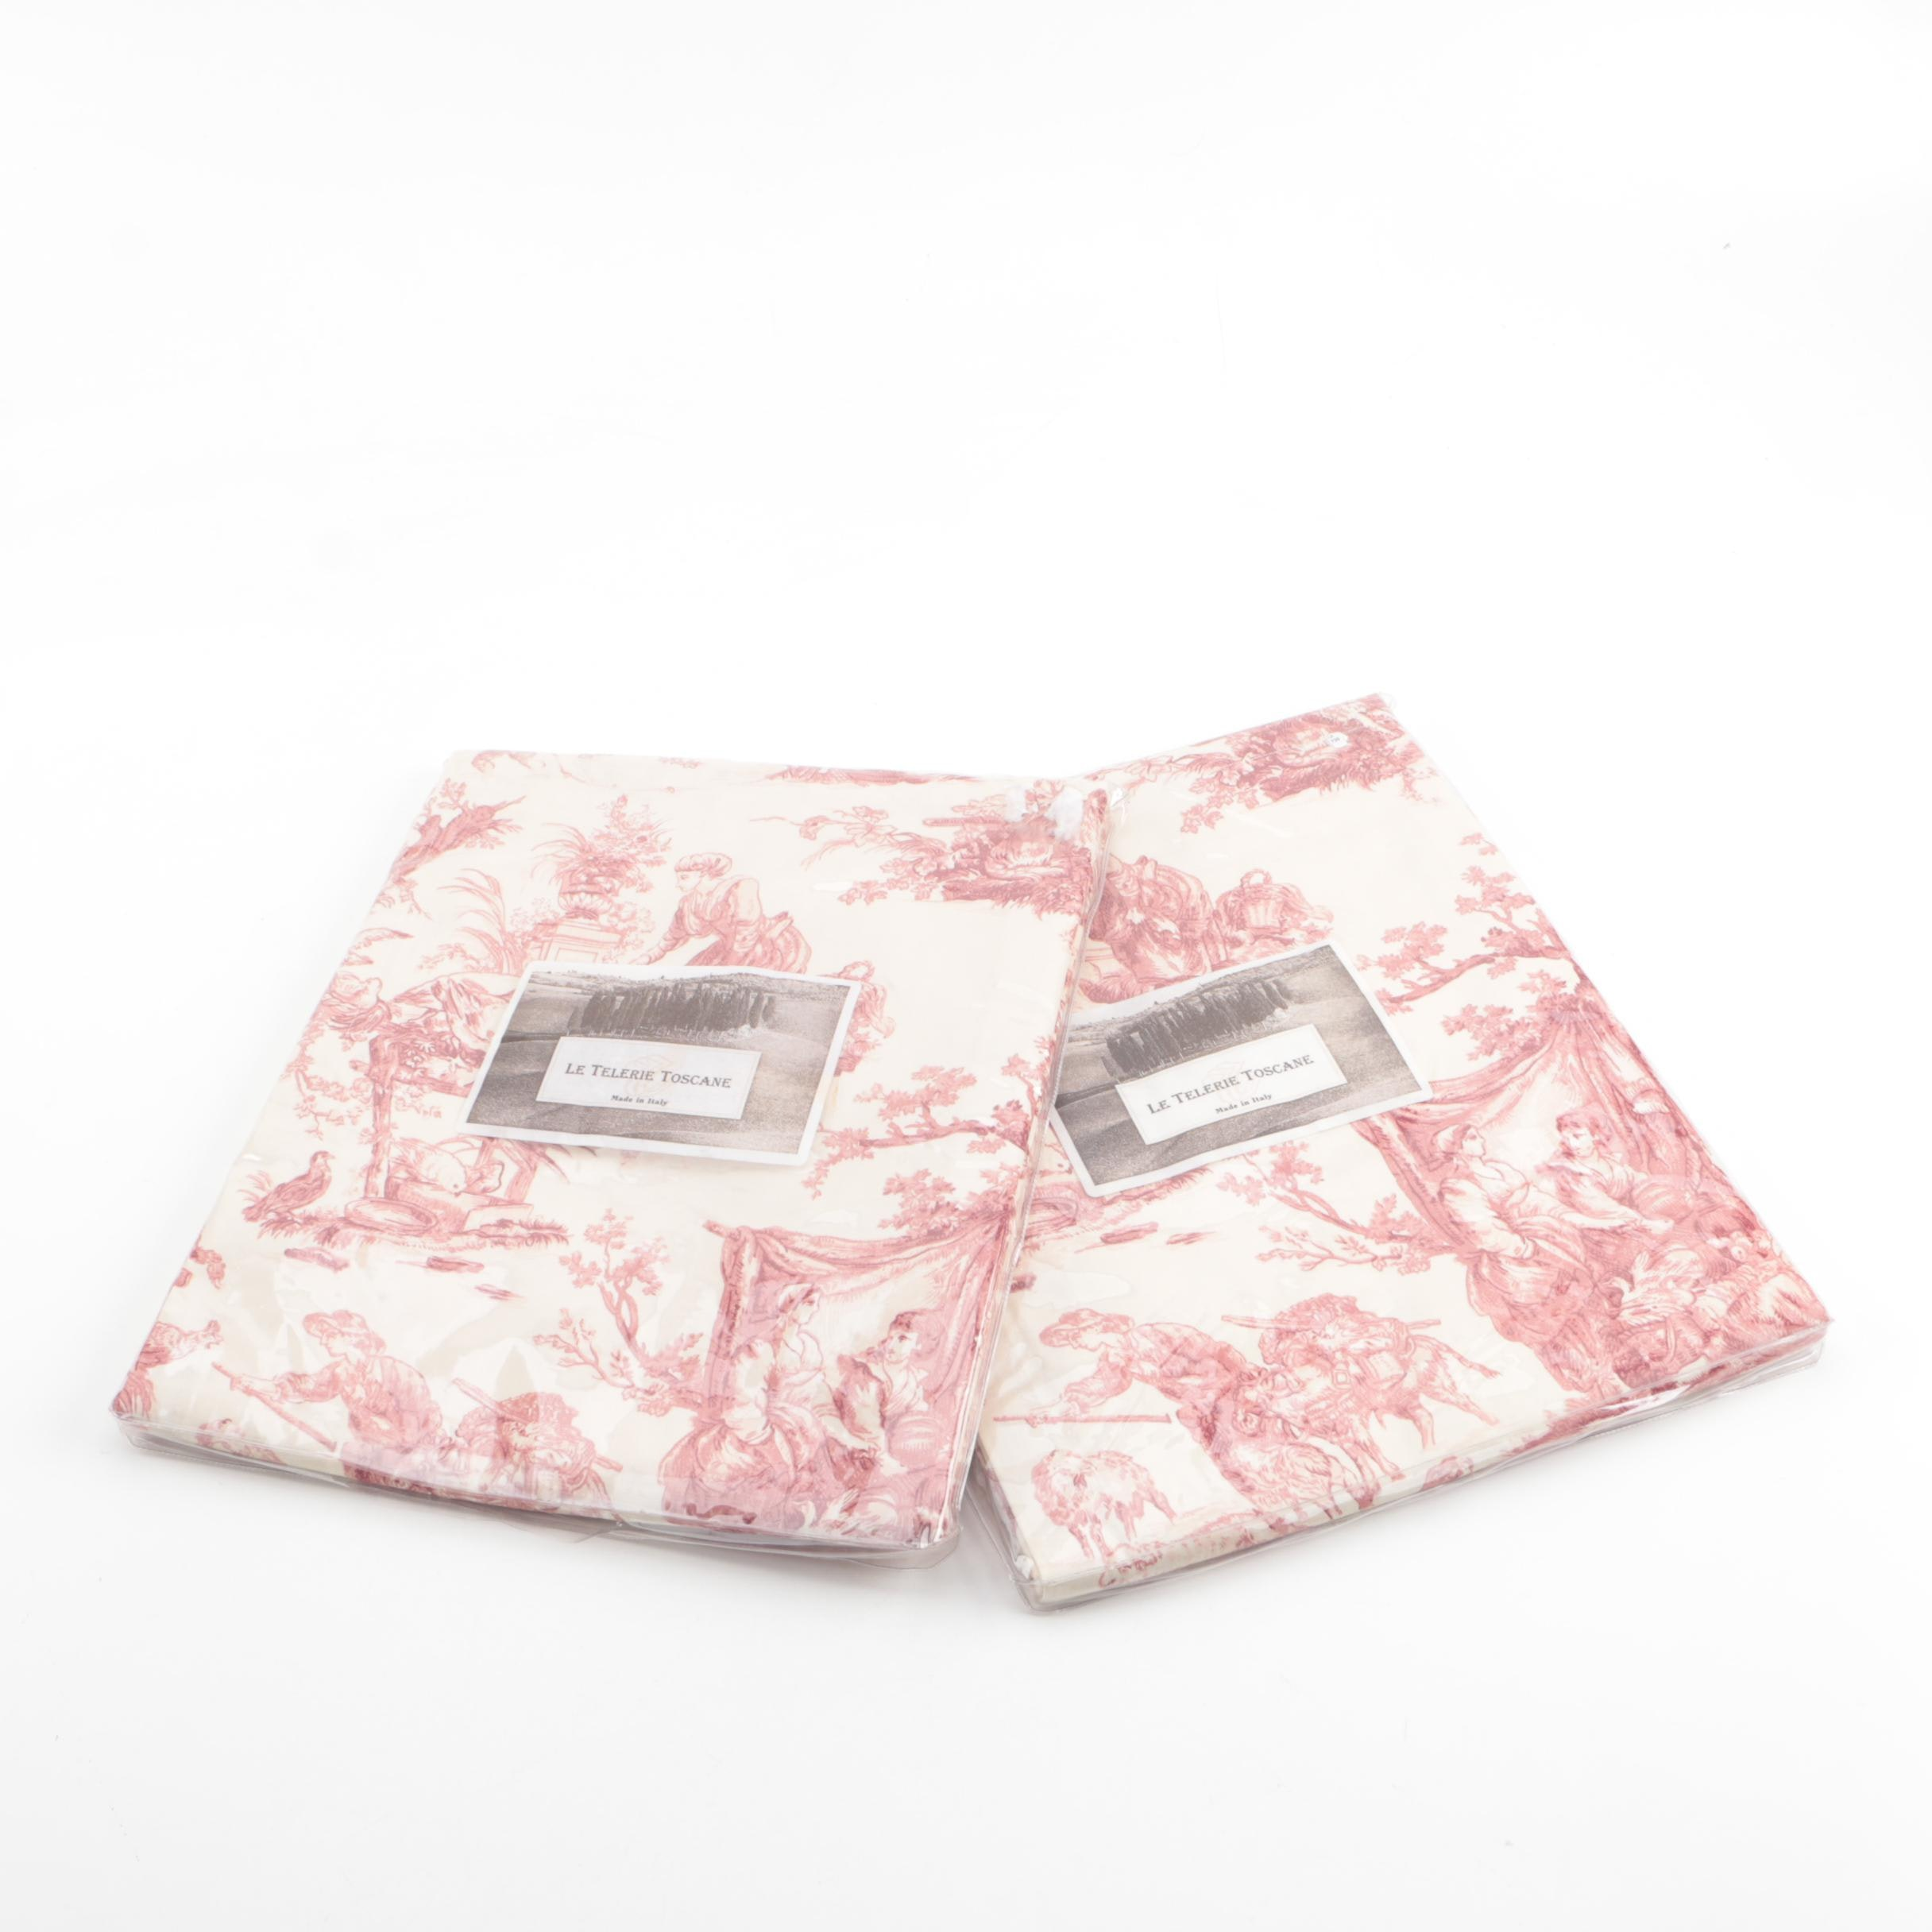 "Le Telerie Toscane ""Toile"" Printed Cotton Tablecloths"